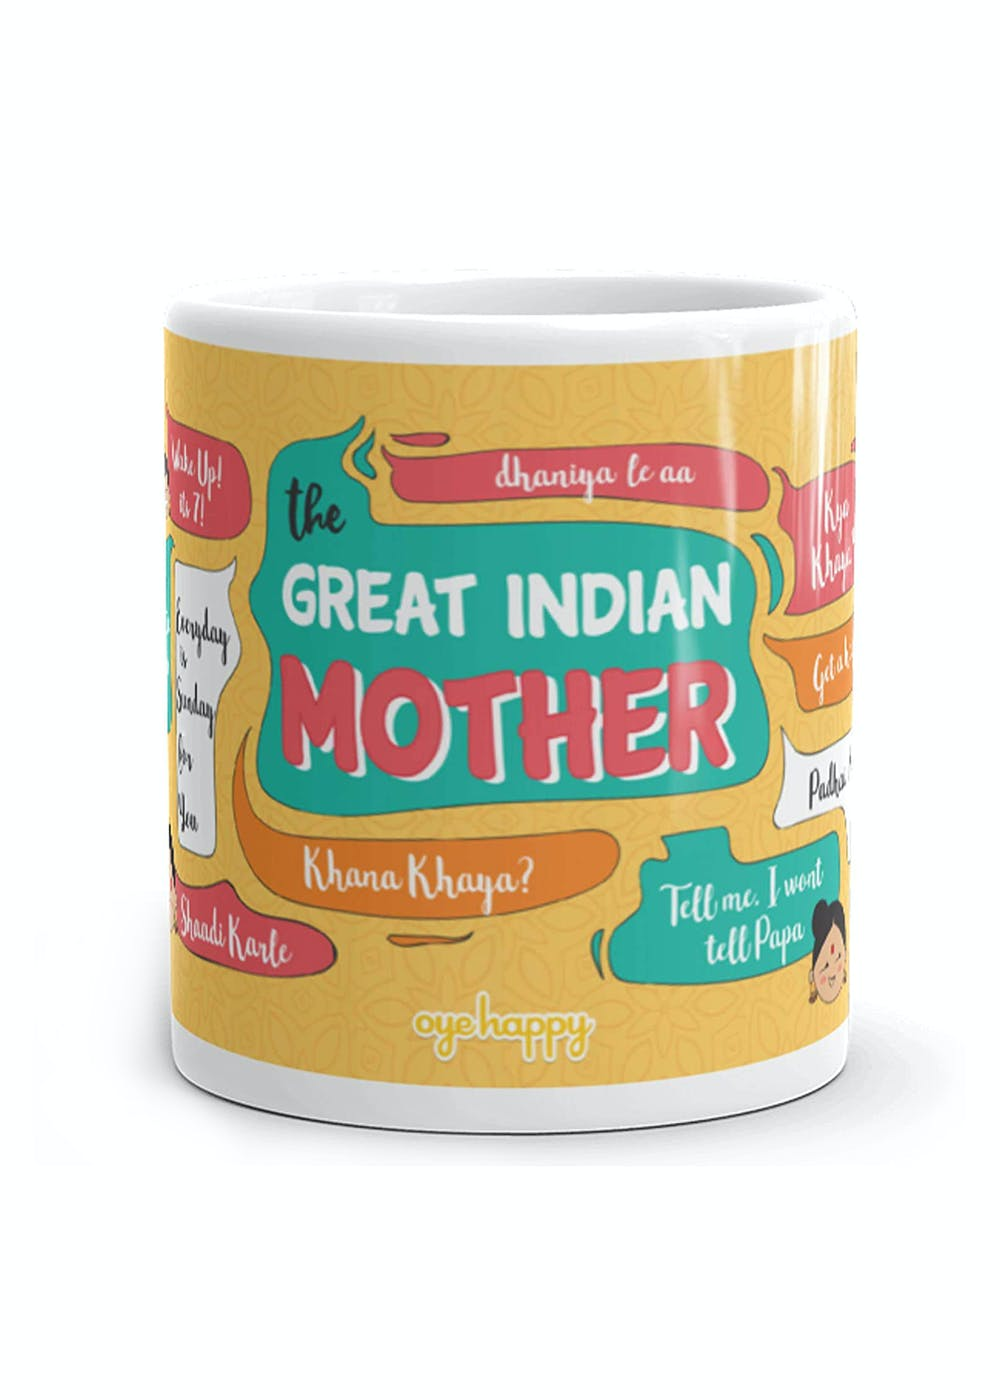 Great Indian Mother Mug with a Cute Scroll Inside